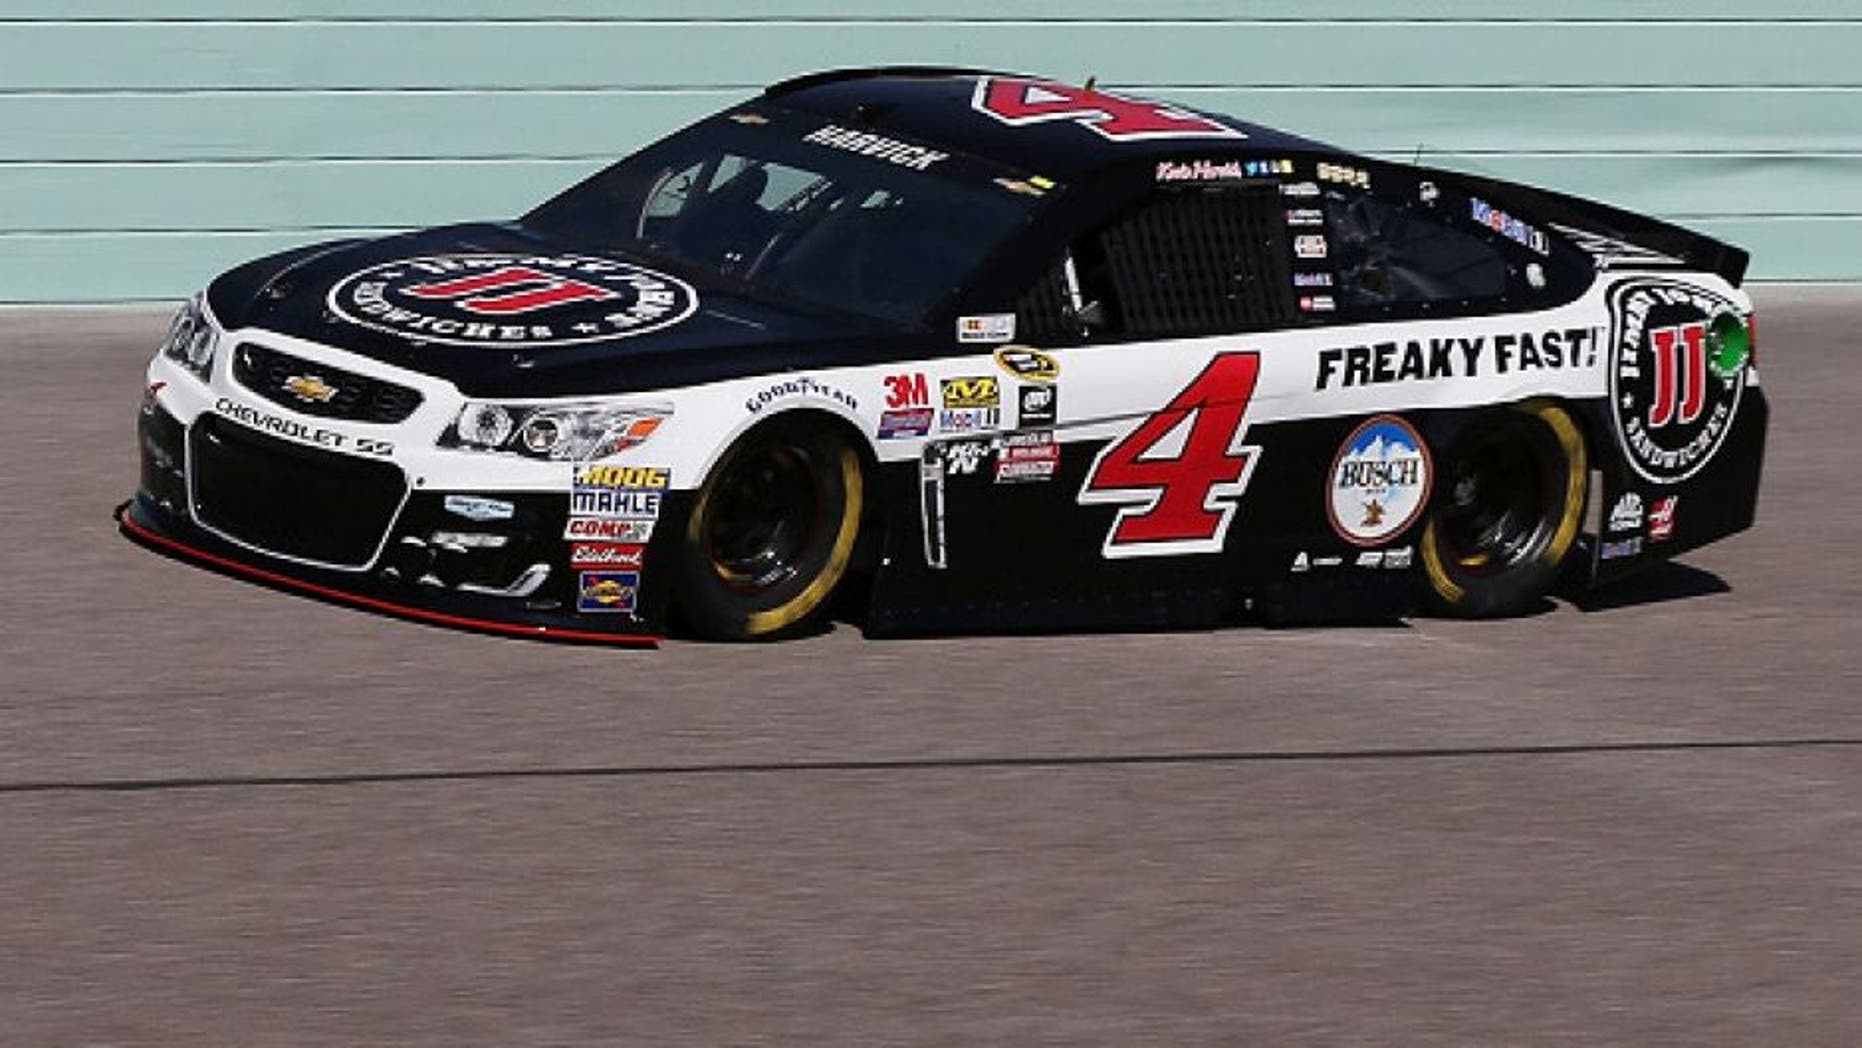 HOMESTEAD, FL - NOVEMBER 18: Kevin Harvick, driver of the #4 Jimmy John's Chevrolet, practices for the NASCAR Sprint Cup Series Ford EcoBoost 400 at Homestead-Miami Speedway on November 18, 2016 in Homestead, Florida. (Photo by Sean Gardner/NASCAR via Getty Images)